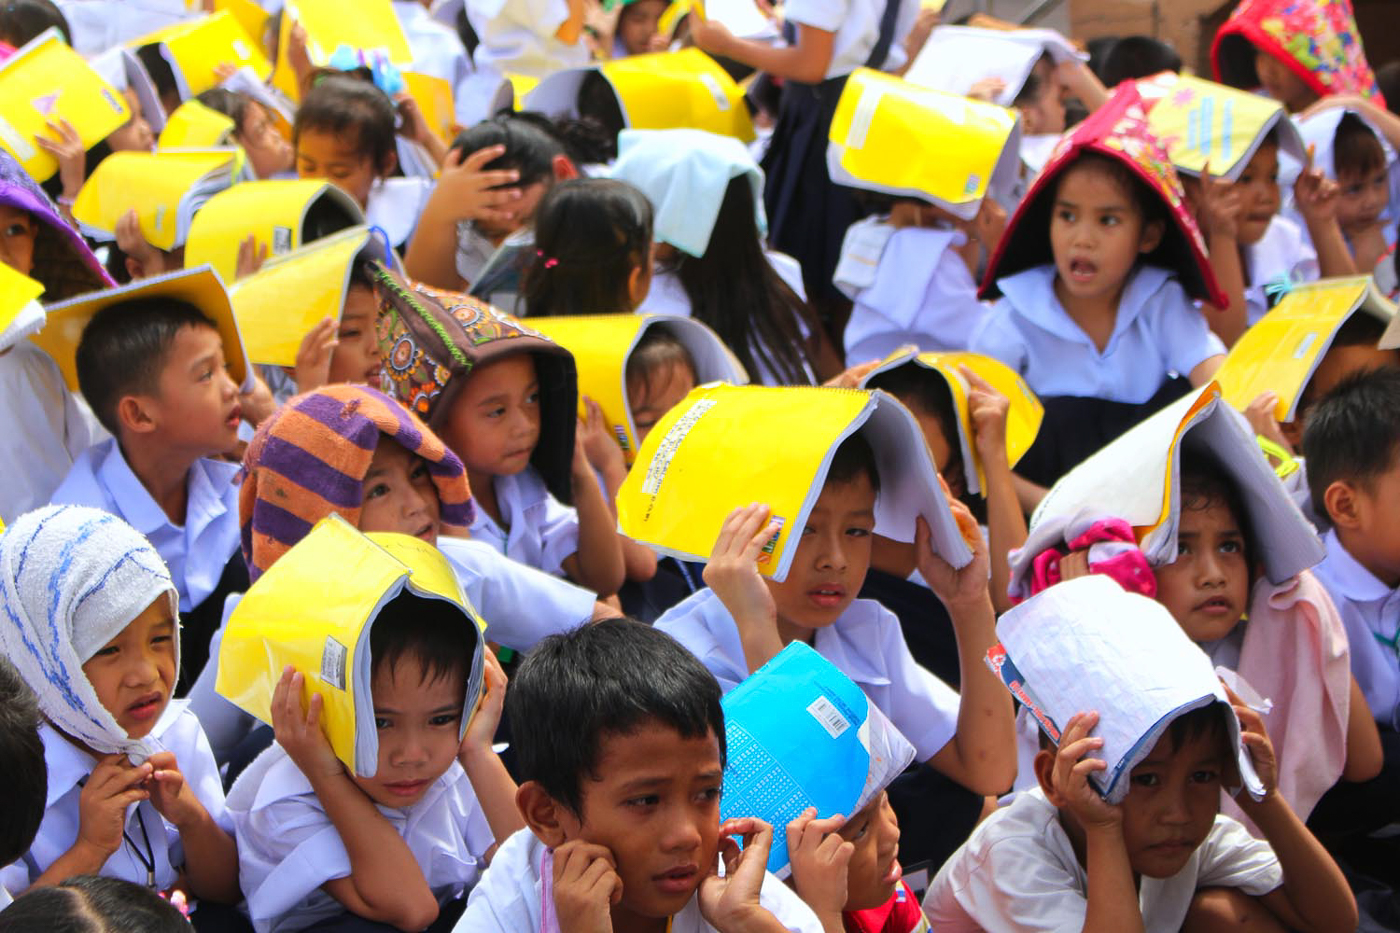 COVER. Students cover their heads with notebooks during the earthquake drill. Photo by Darren Langit/Rappler